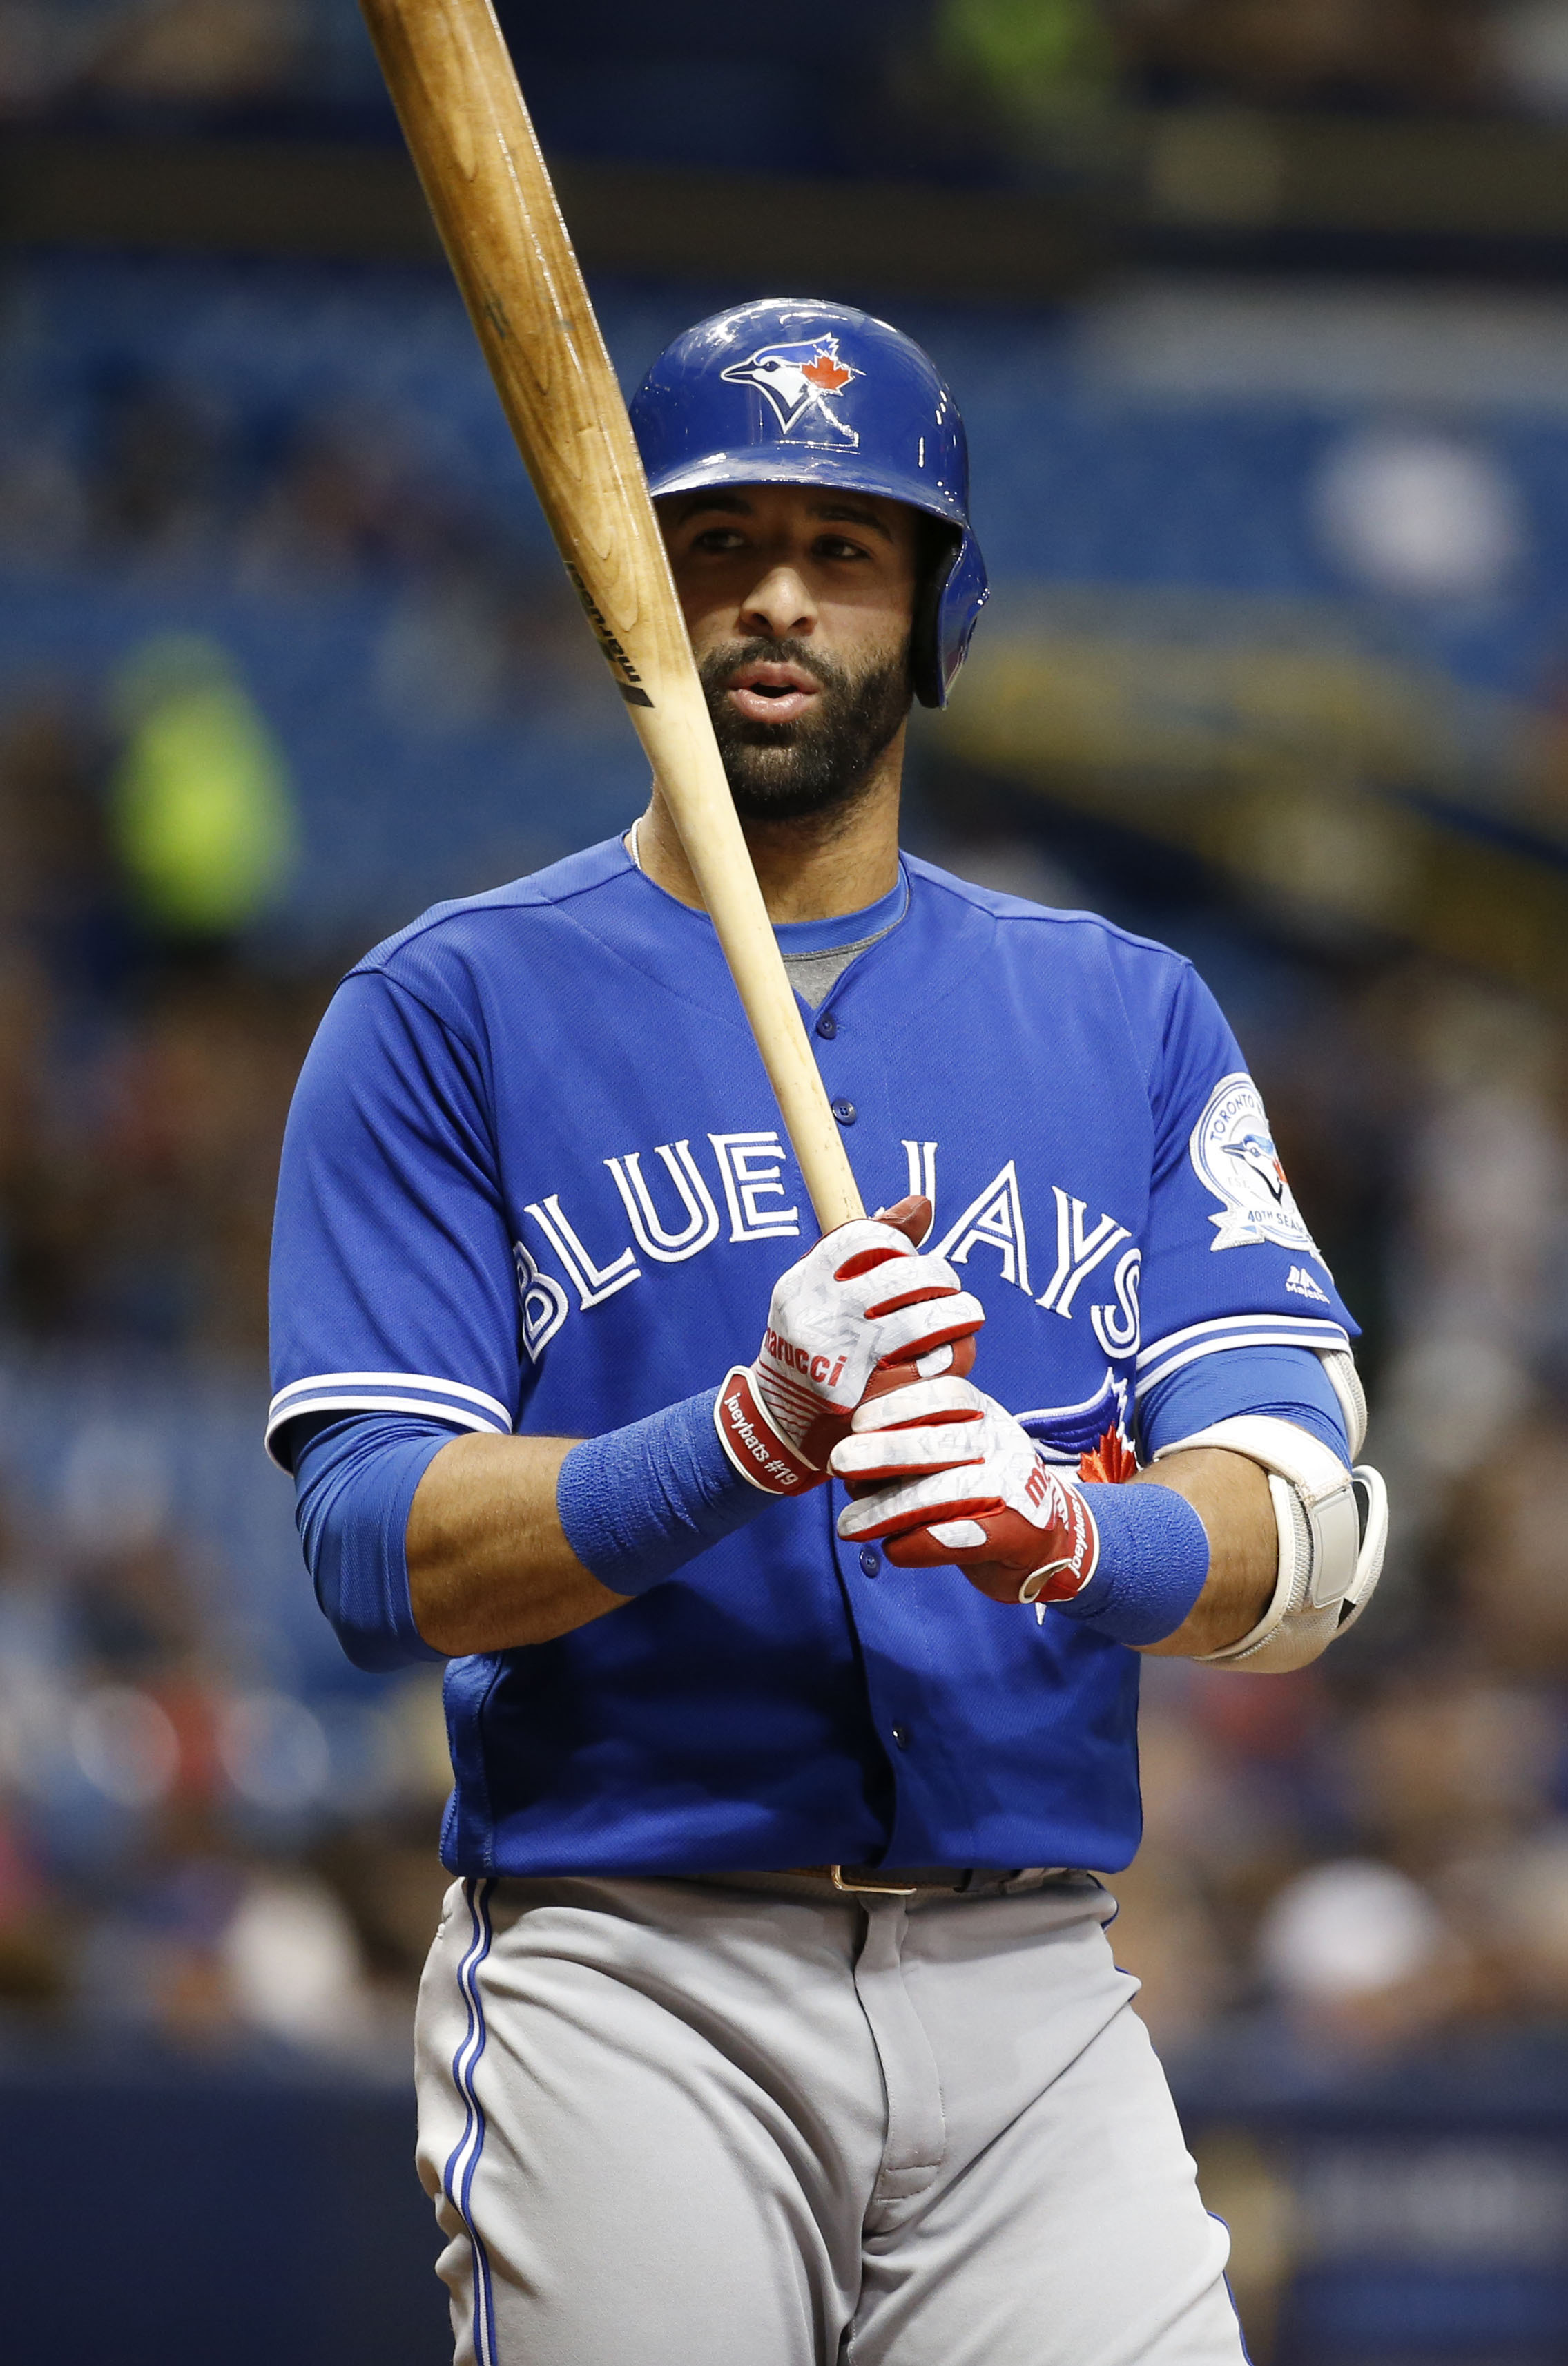 Jose bautista home run projections